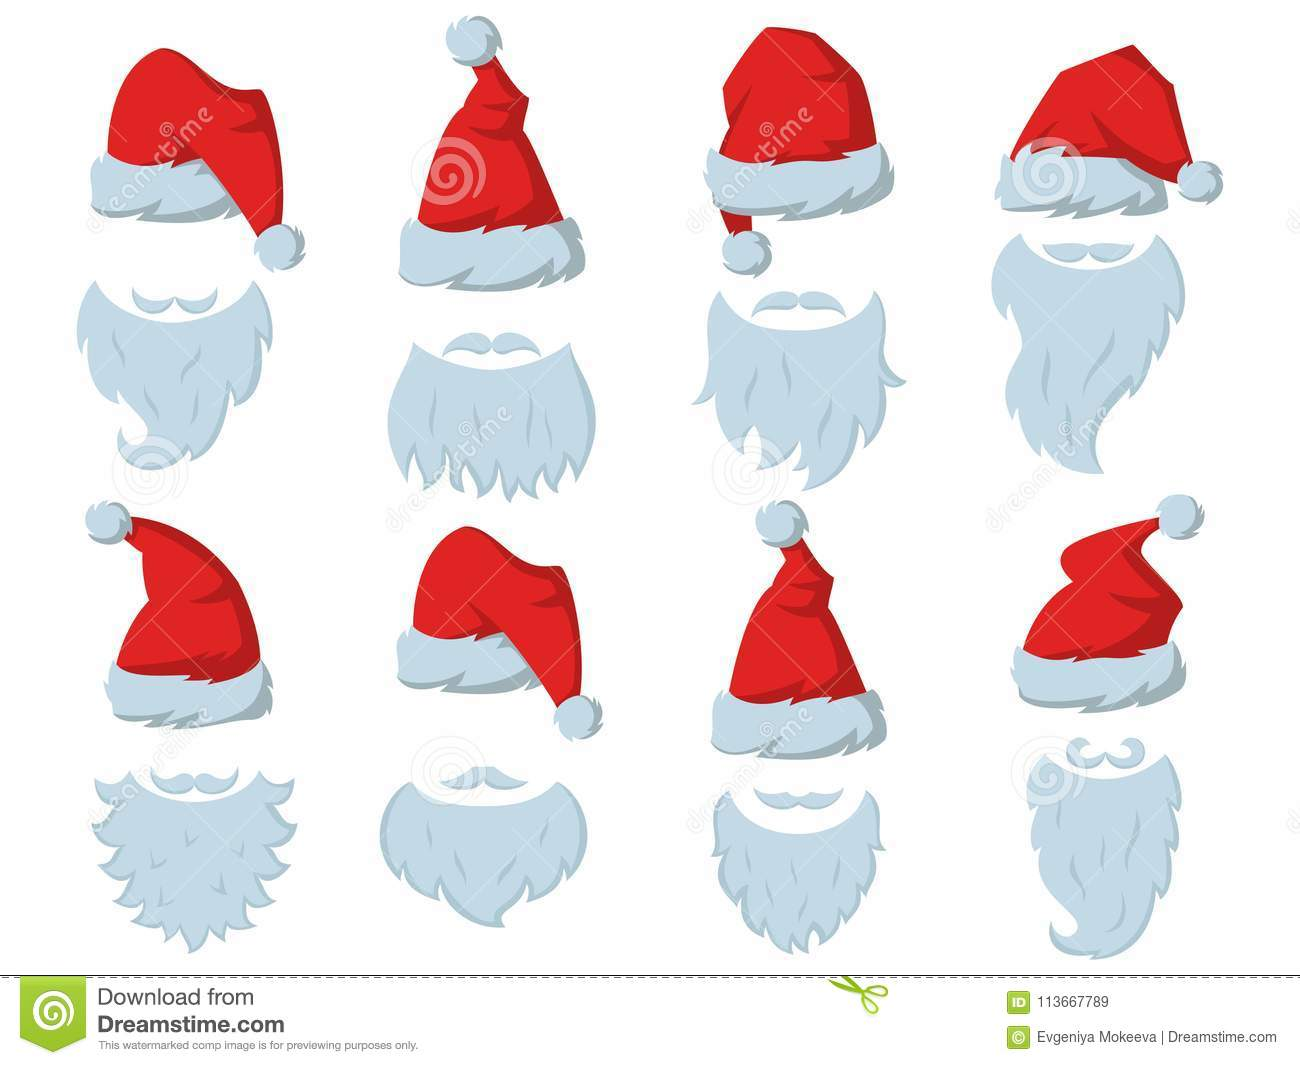 113cdcba781 Royalty-Free Vector. Set of Red hats and beards of Santa Claus.